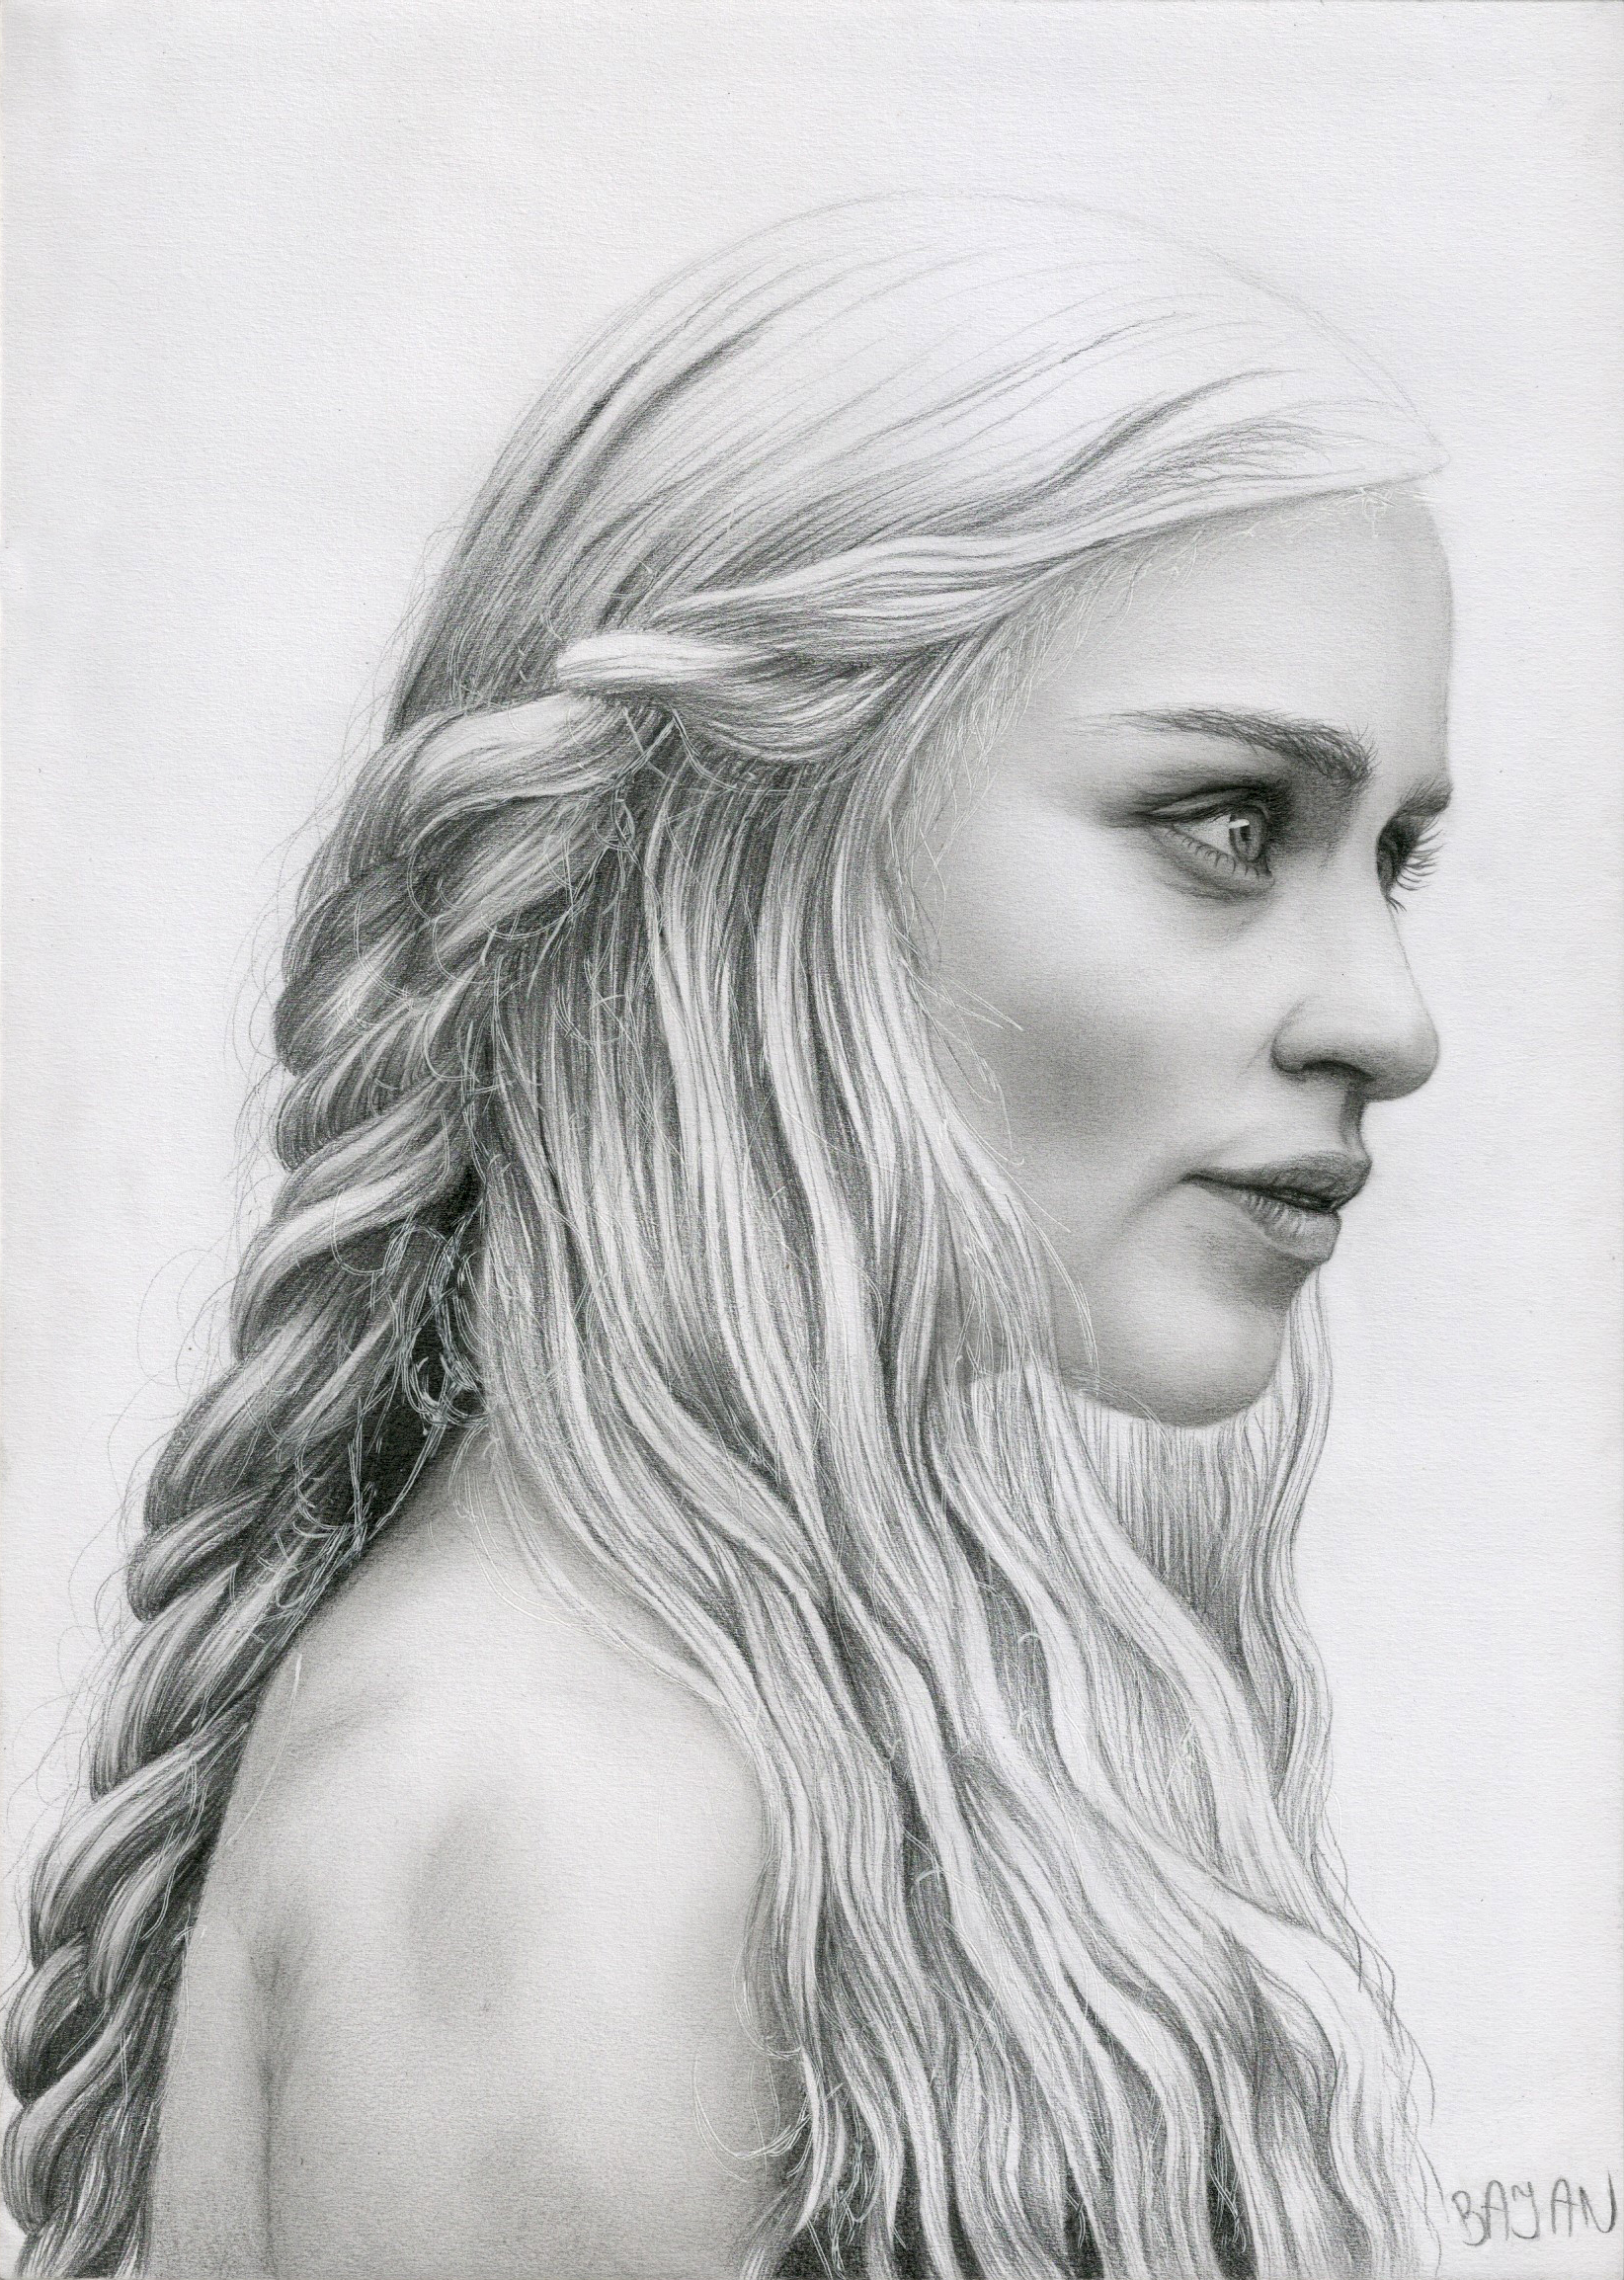 How to draw a chair youtube - Daenerys Targaryen Game Of Thrones By Bajanoski On Deviantart